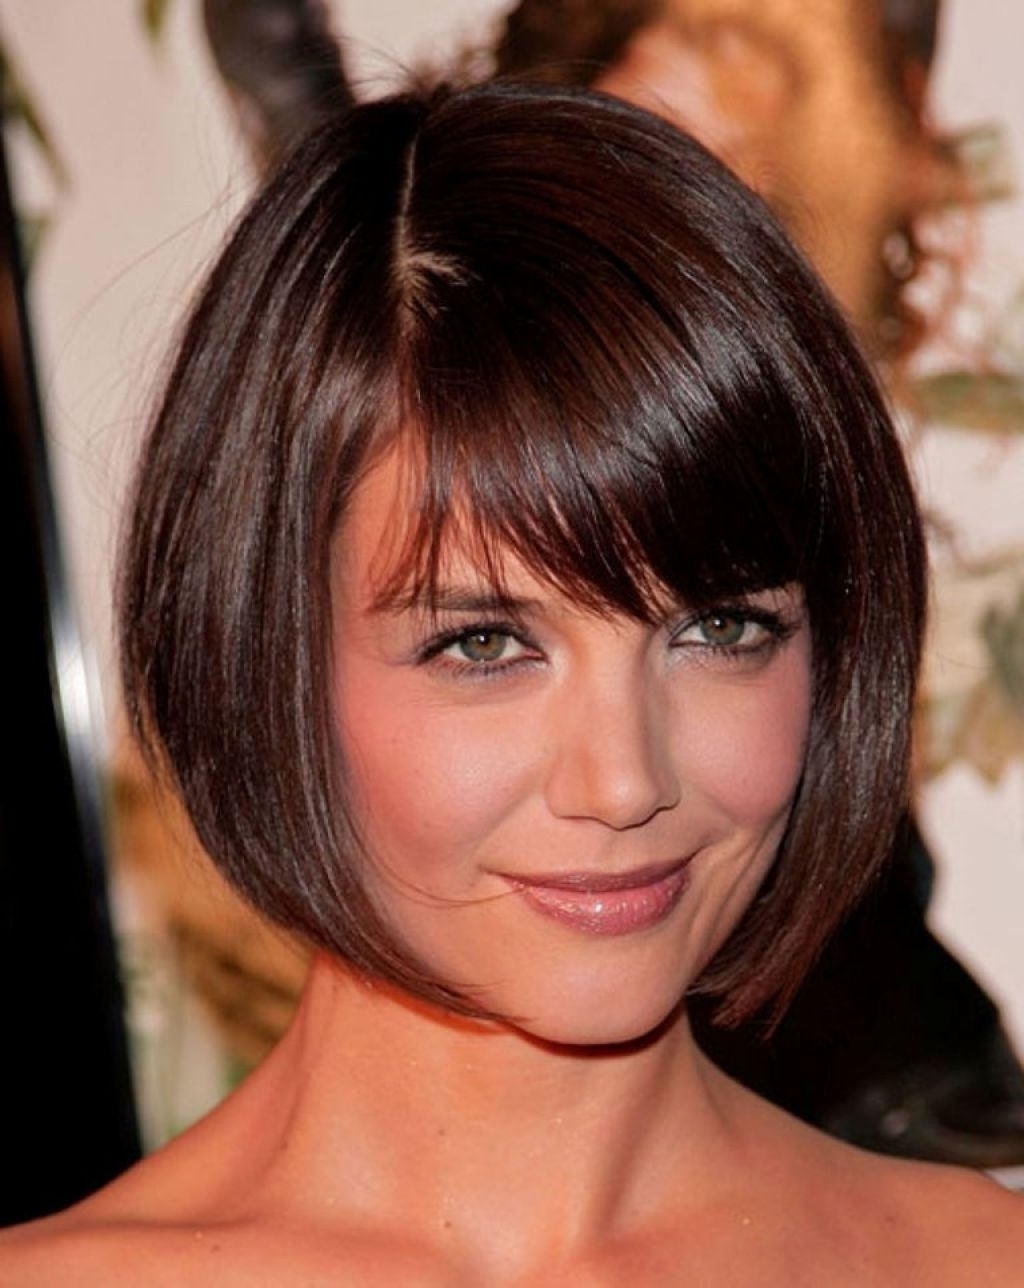 Short Haircut For Square Face Thick Hair – Wavy Haircut Inside Short Haircuts For Square Face (View 24 of 25)